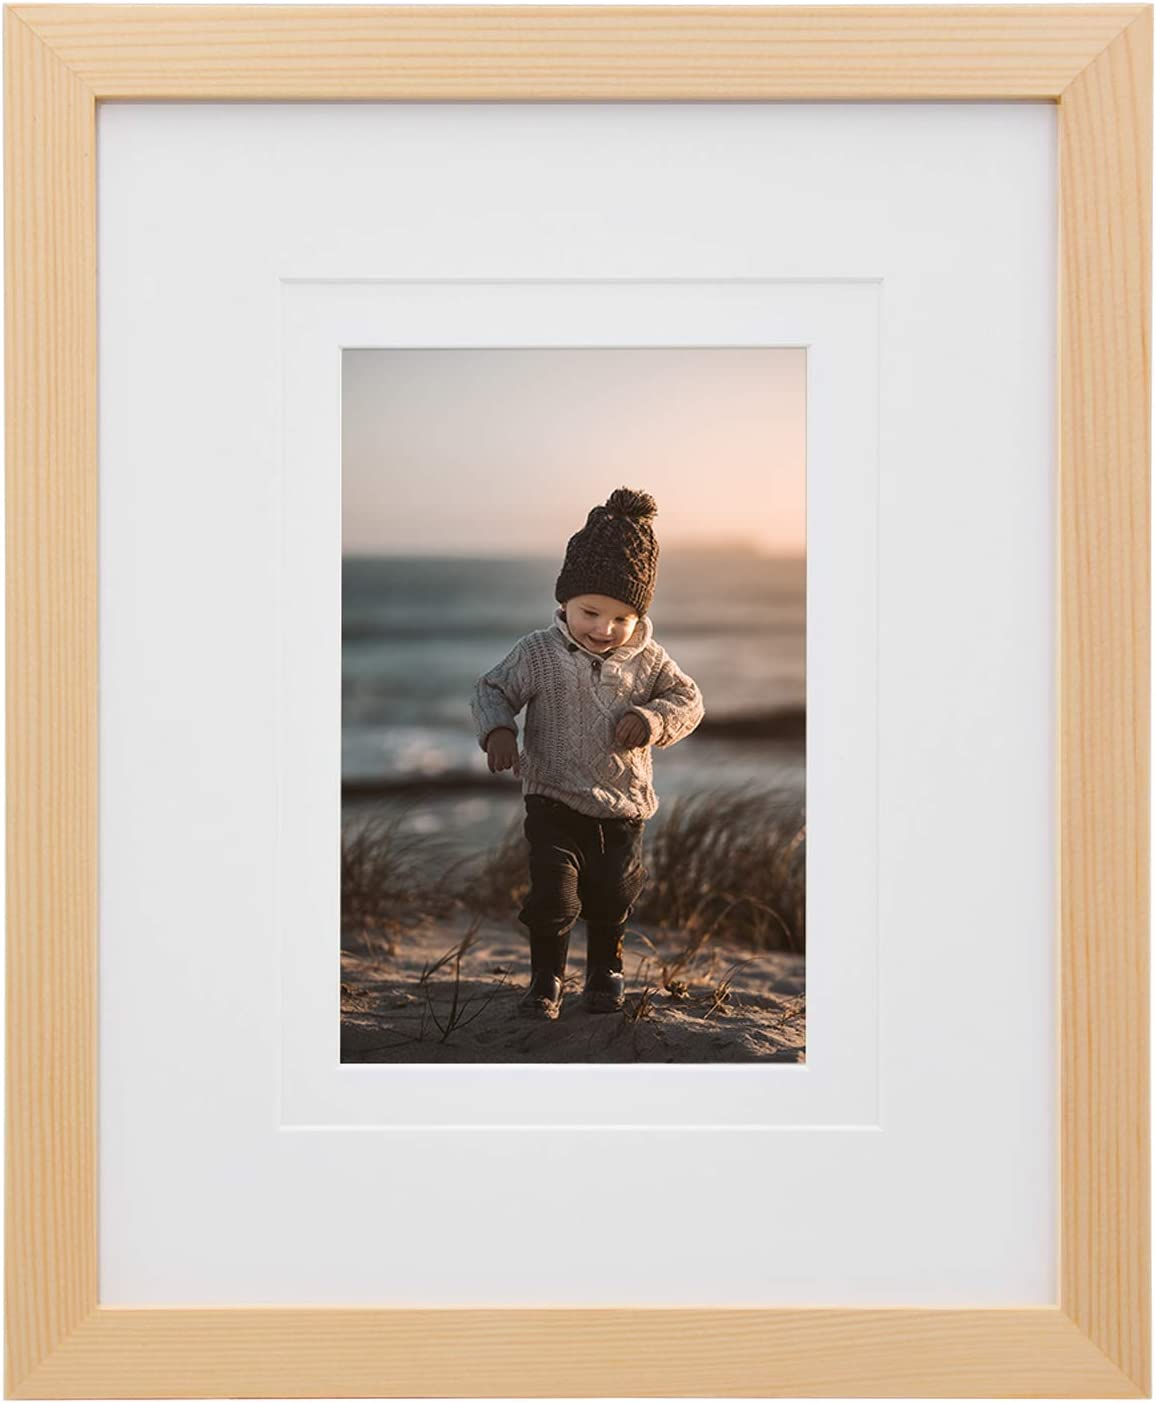 KINLINK 8x10 Picture Frames Natural Wood Frames with HD Plexiglass for Pictures 4x6/5x7 with Mat or 8x10 Without Mat, Tabletop and Wall Mounting Display